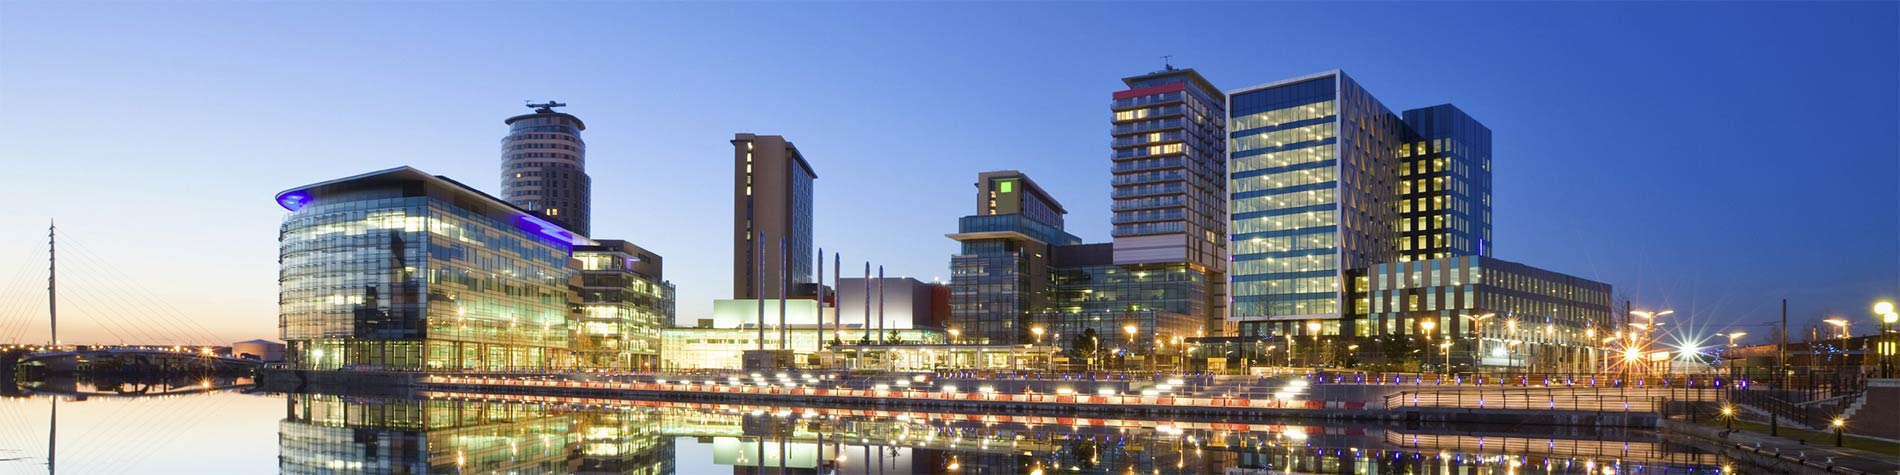 Cheap flights to Manchester (MAN) from €10 83 | Ryanair com